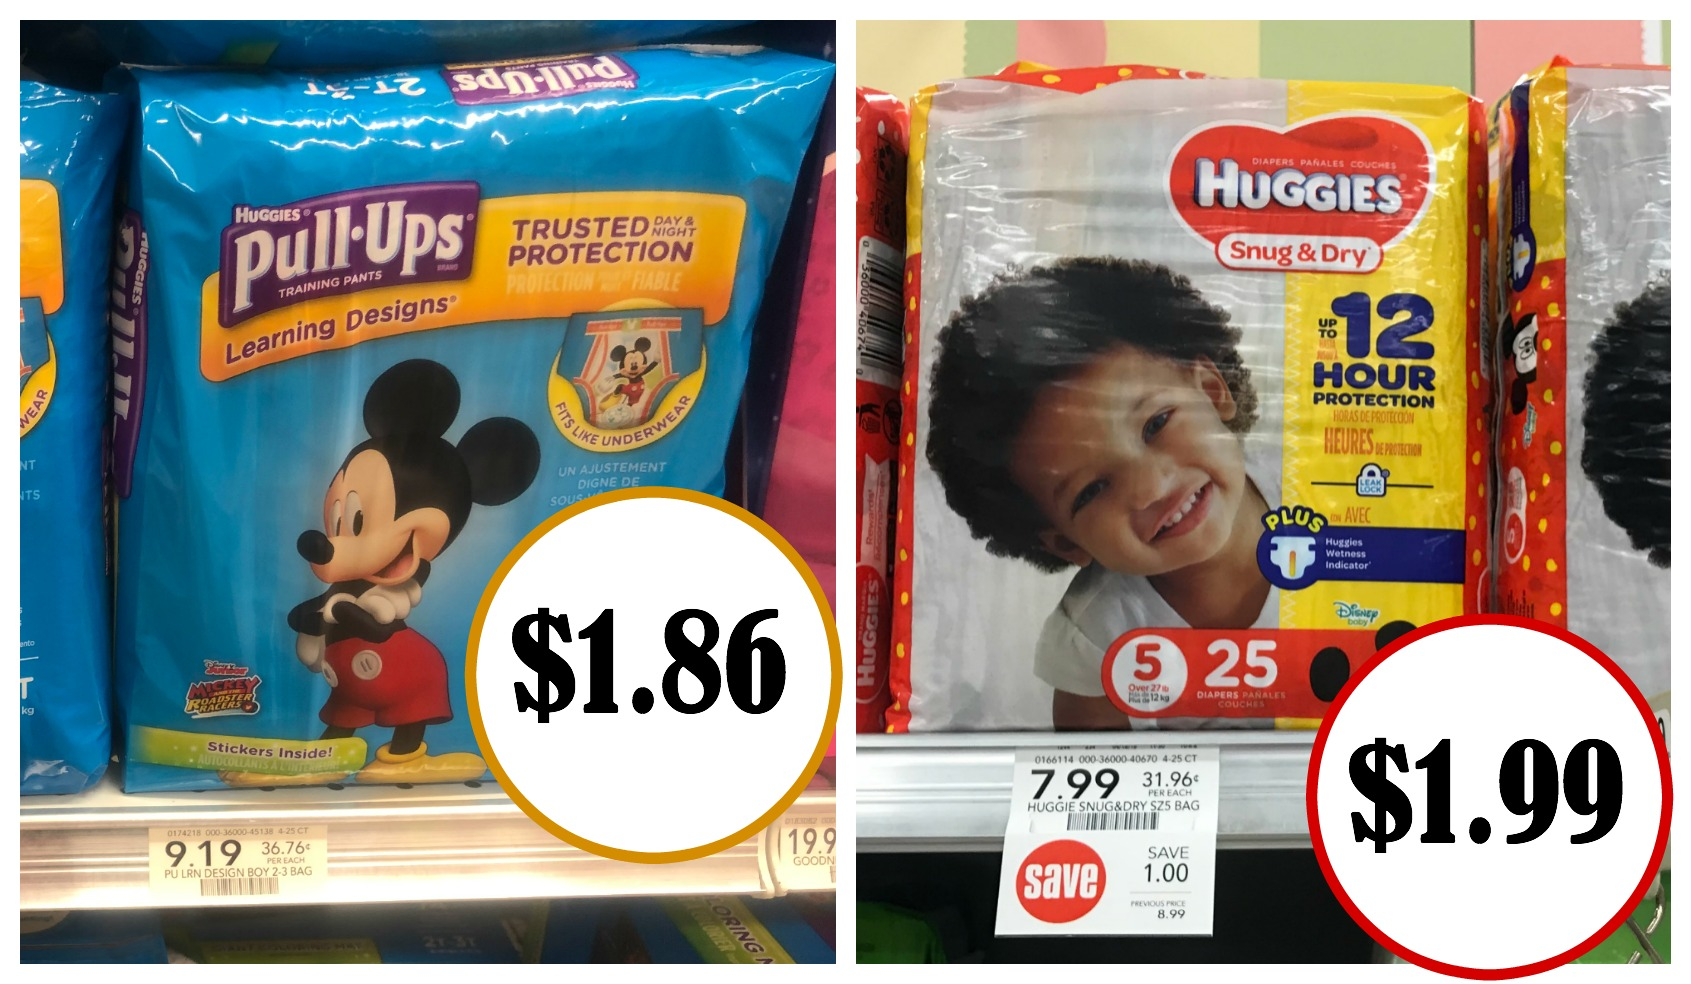 Amazing Deal On Huggies Diapers And Pull-Ups This Week At Publix